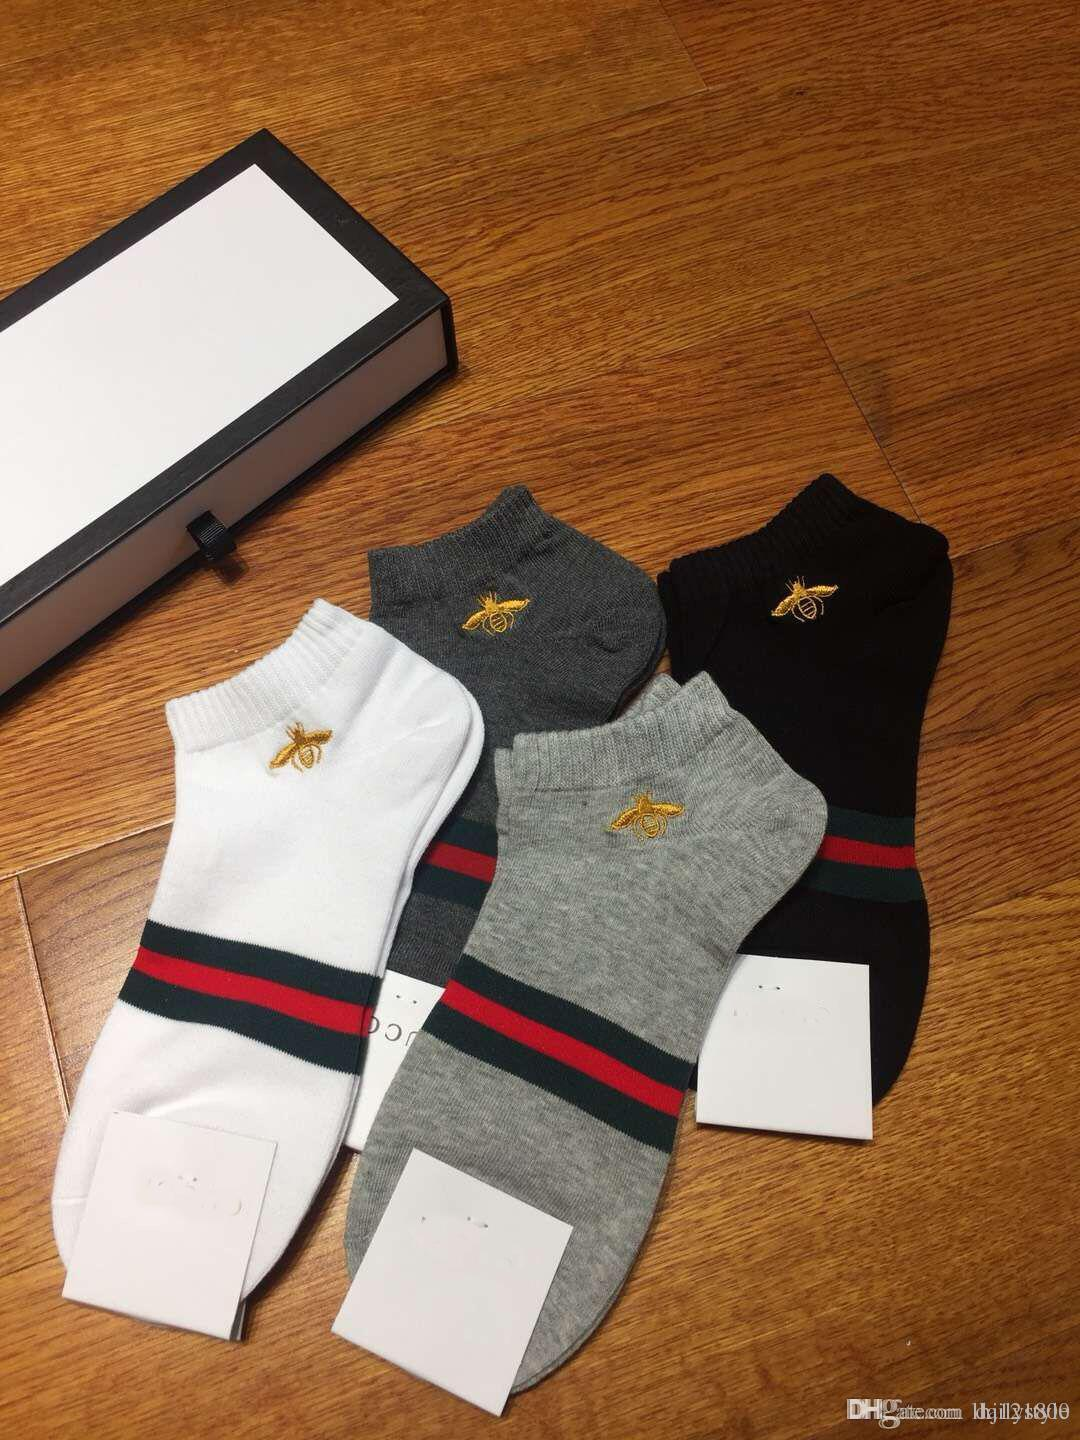 4 pairs/box bee embroidered men socks hight quality striped jacquard with original box unisex cotton socks men women gifts